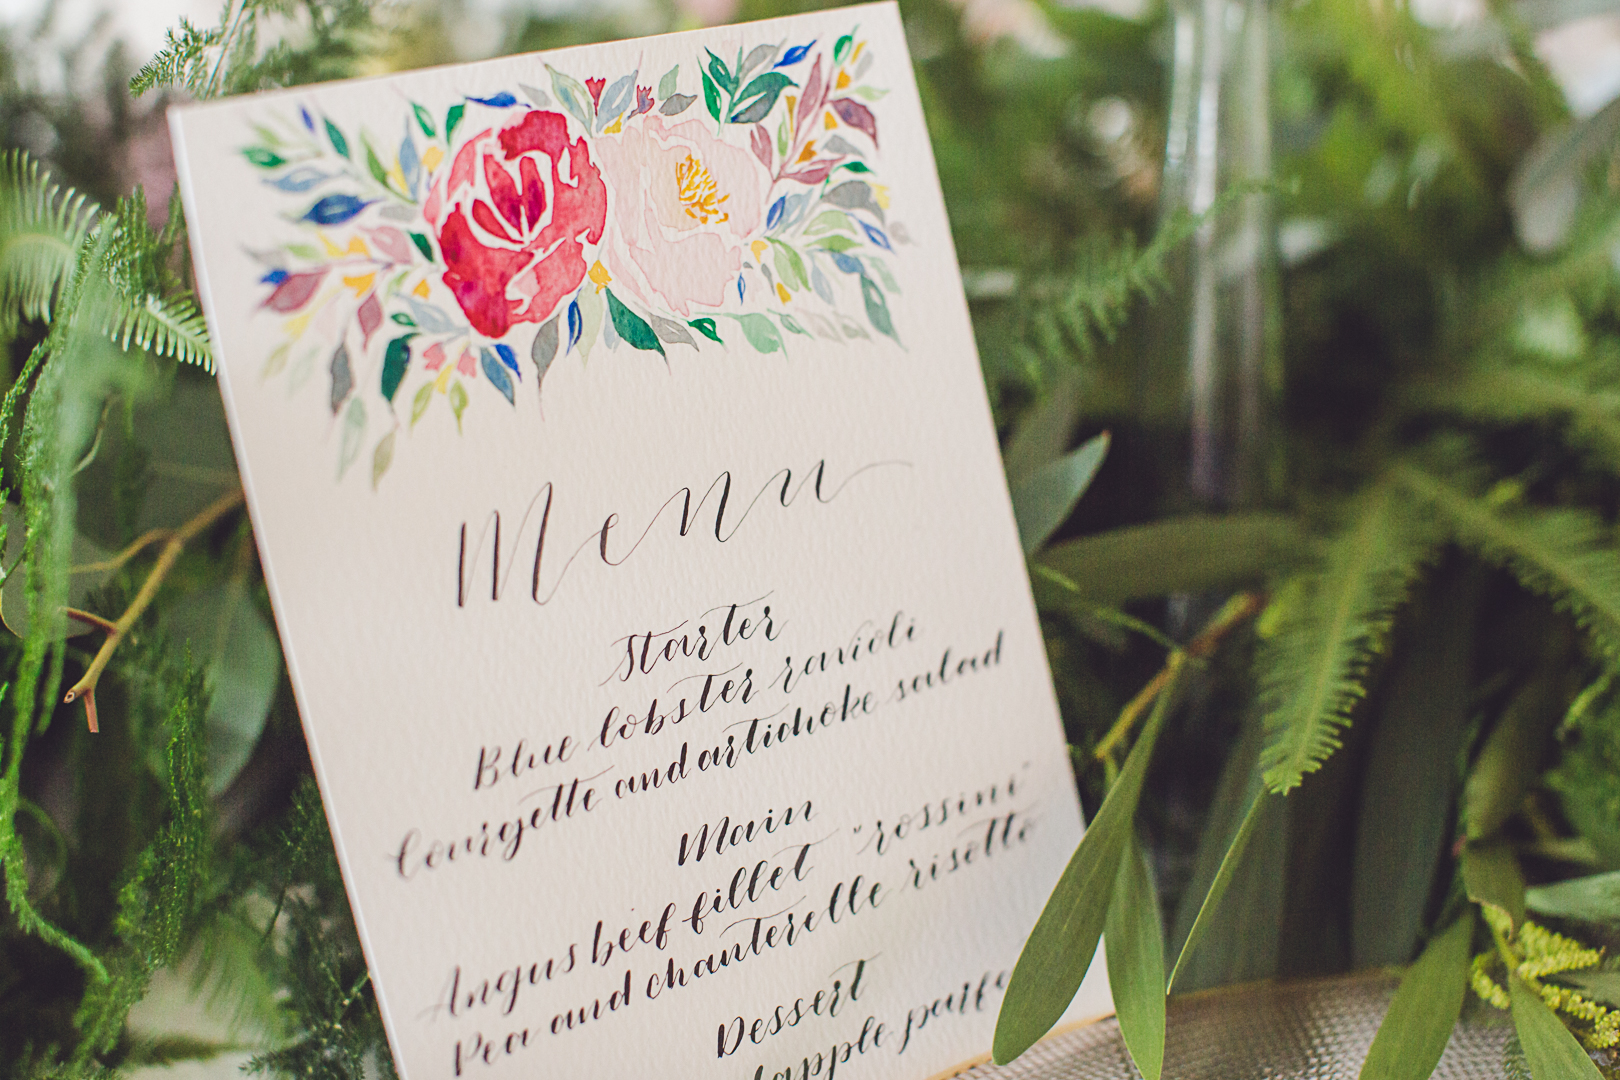 Hand painted watercolour stationery finishes off the table décor perfectly